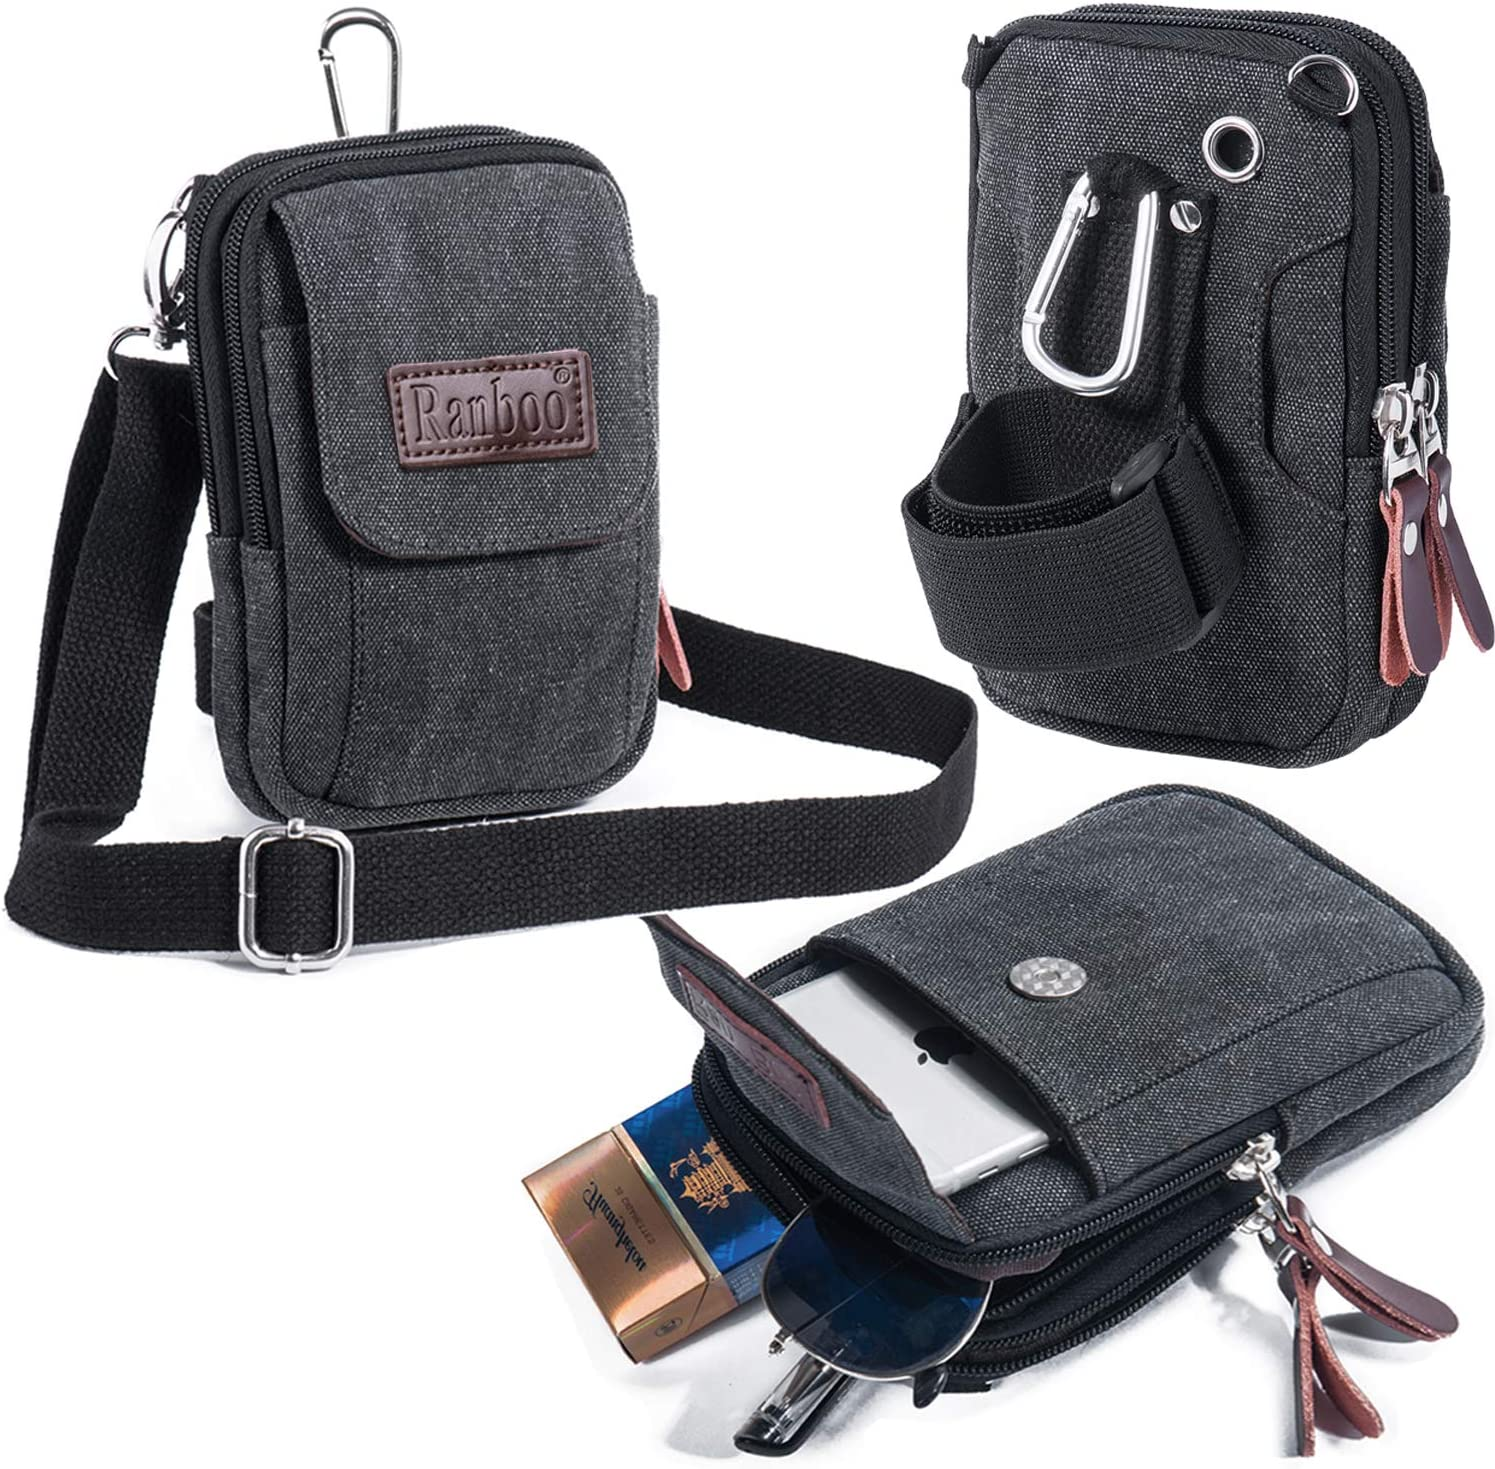 Canvas Shoulder Bag Belt Clip Loop Cell Phone Pouch Compatible for iPhone Xs Max XS XR 7 8 Plus Holster Case Note 9 8 Zipper Pocket Men Travel Wallet Waist Bag Army Gray Ranboo Crossbody Phone Purse